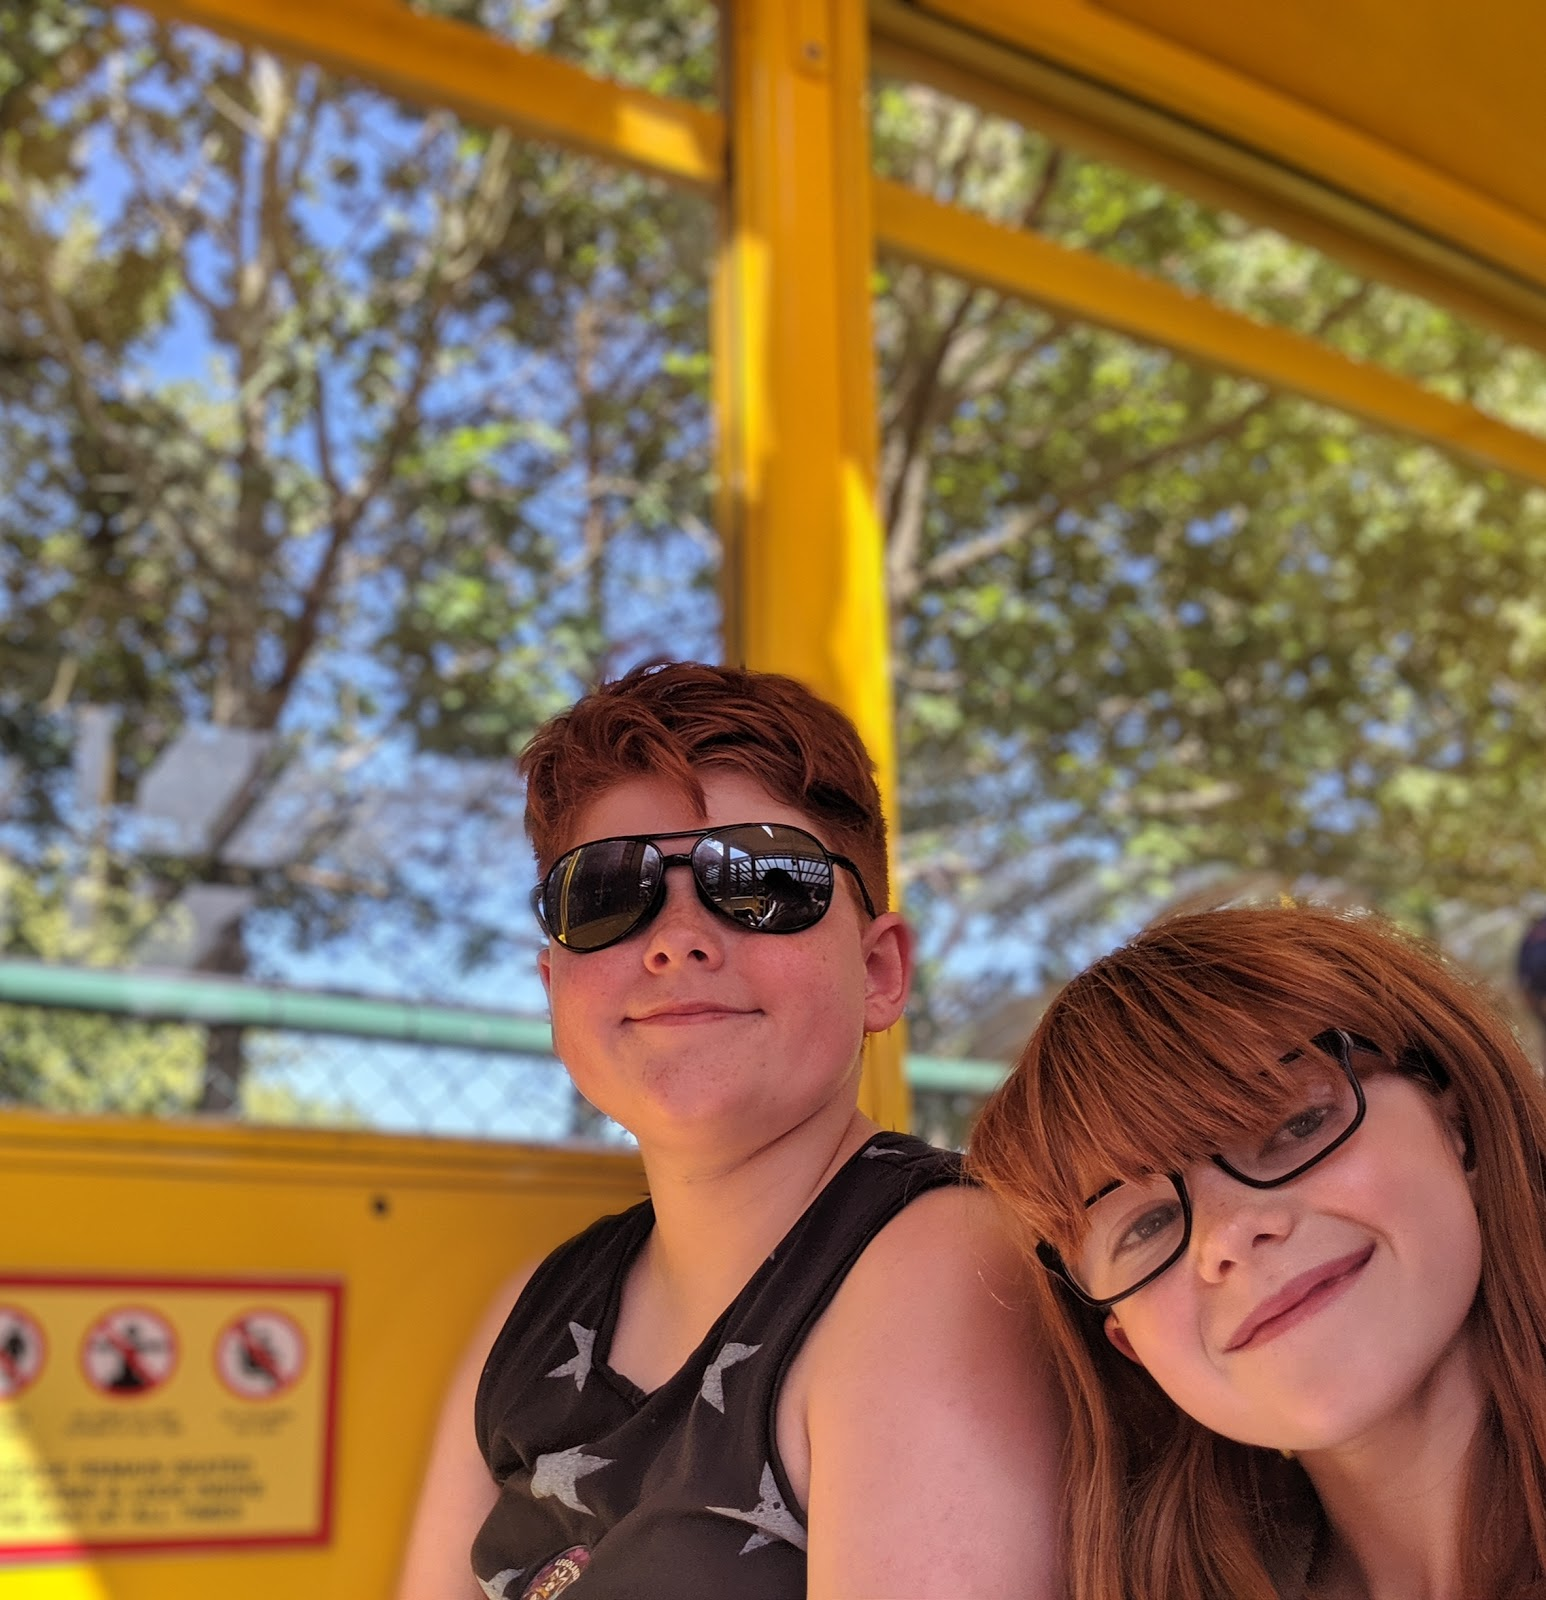 Exploring the Southern Merlin Theme Parks with Tweens  - LEGOLAND hill train